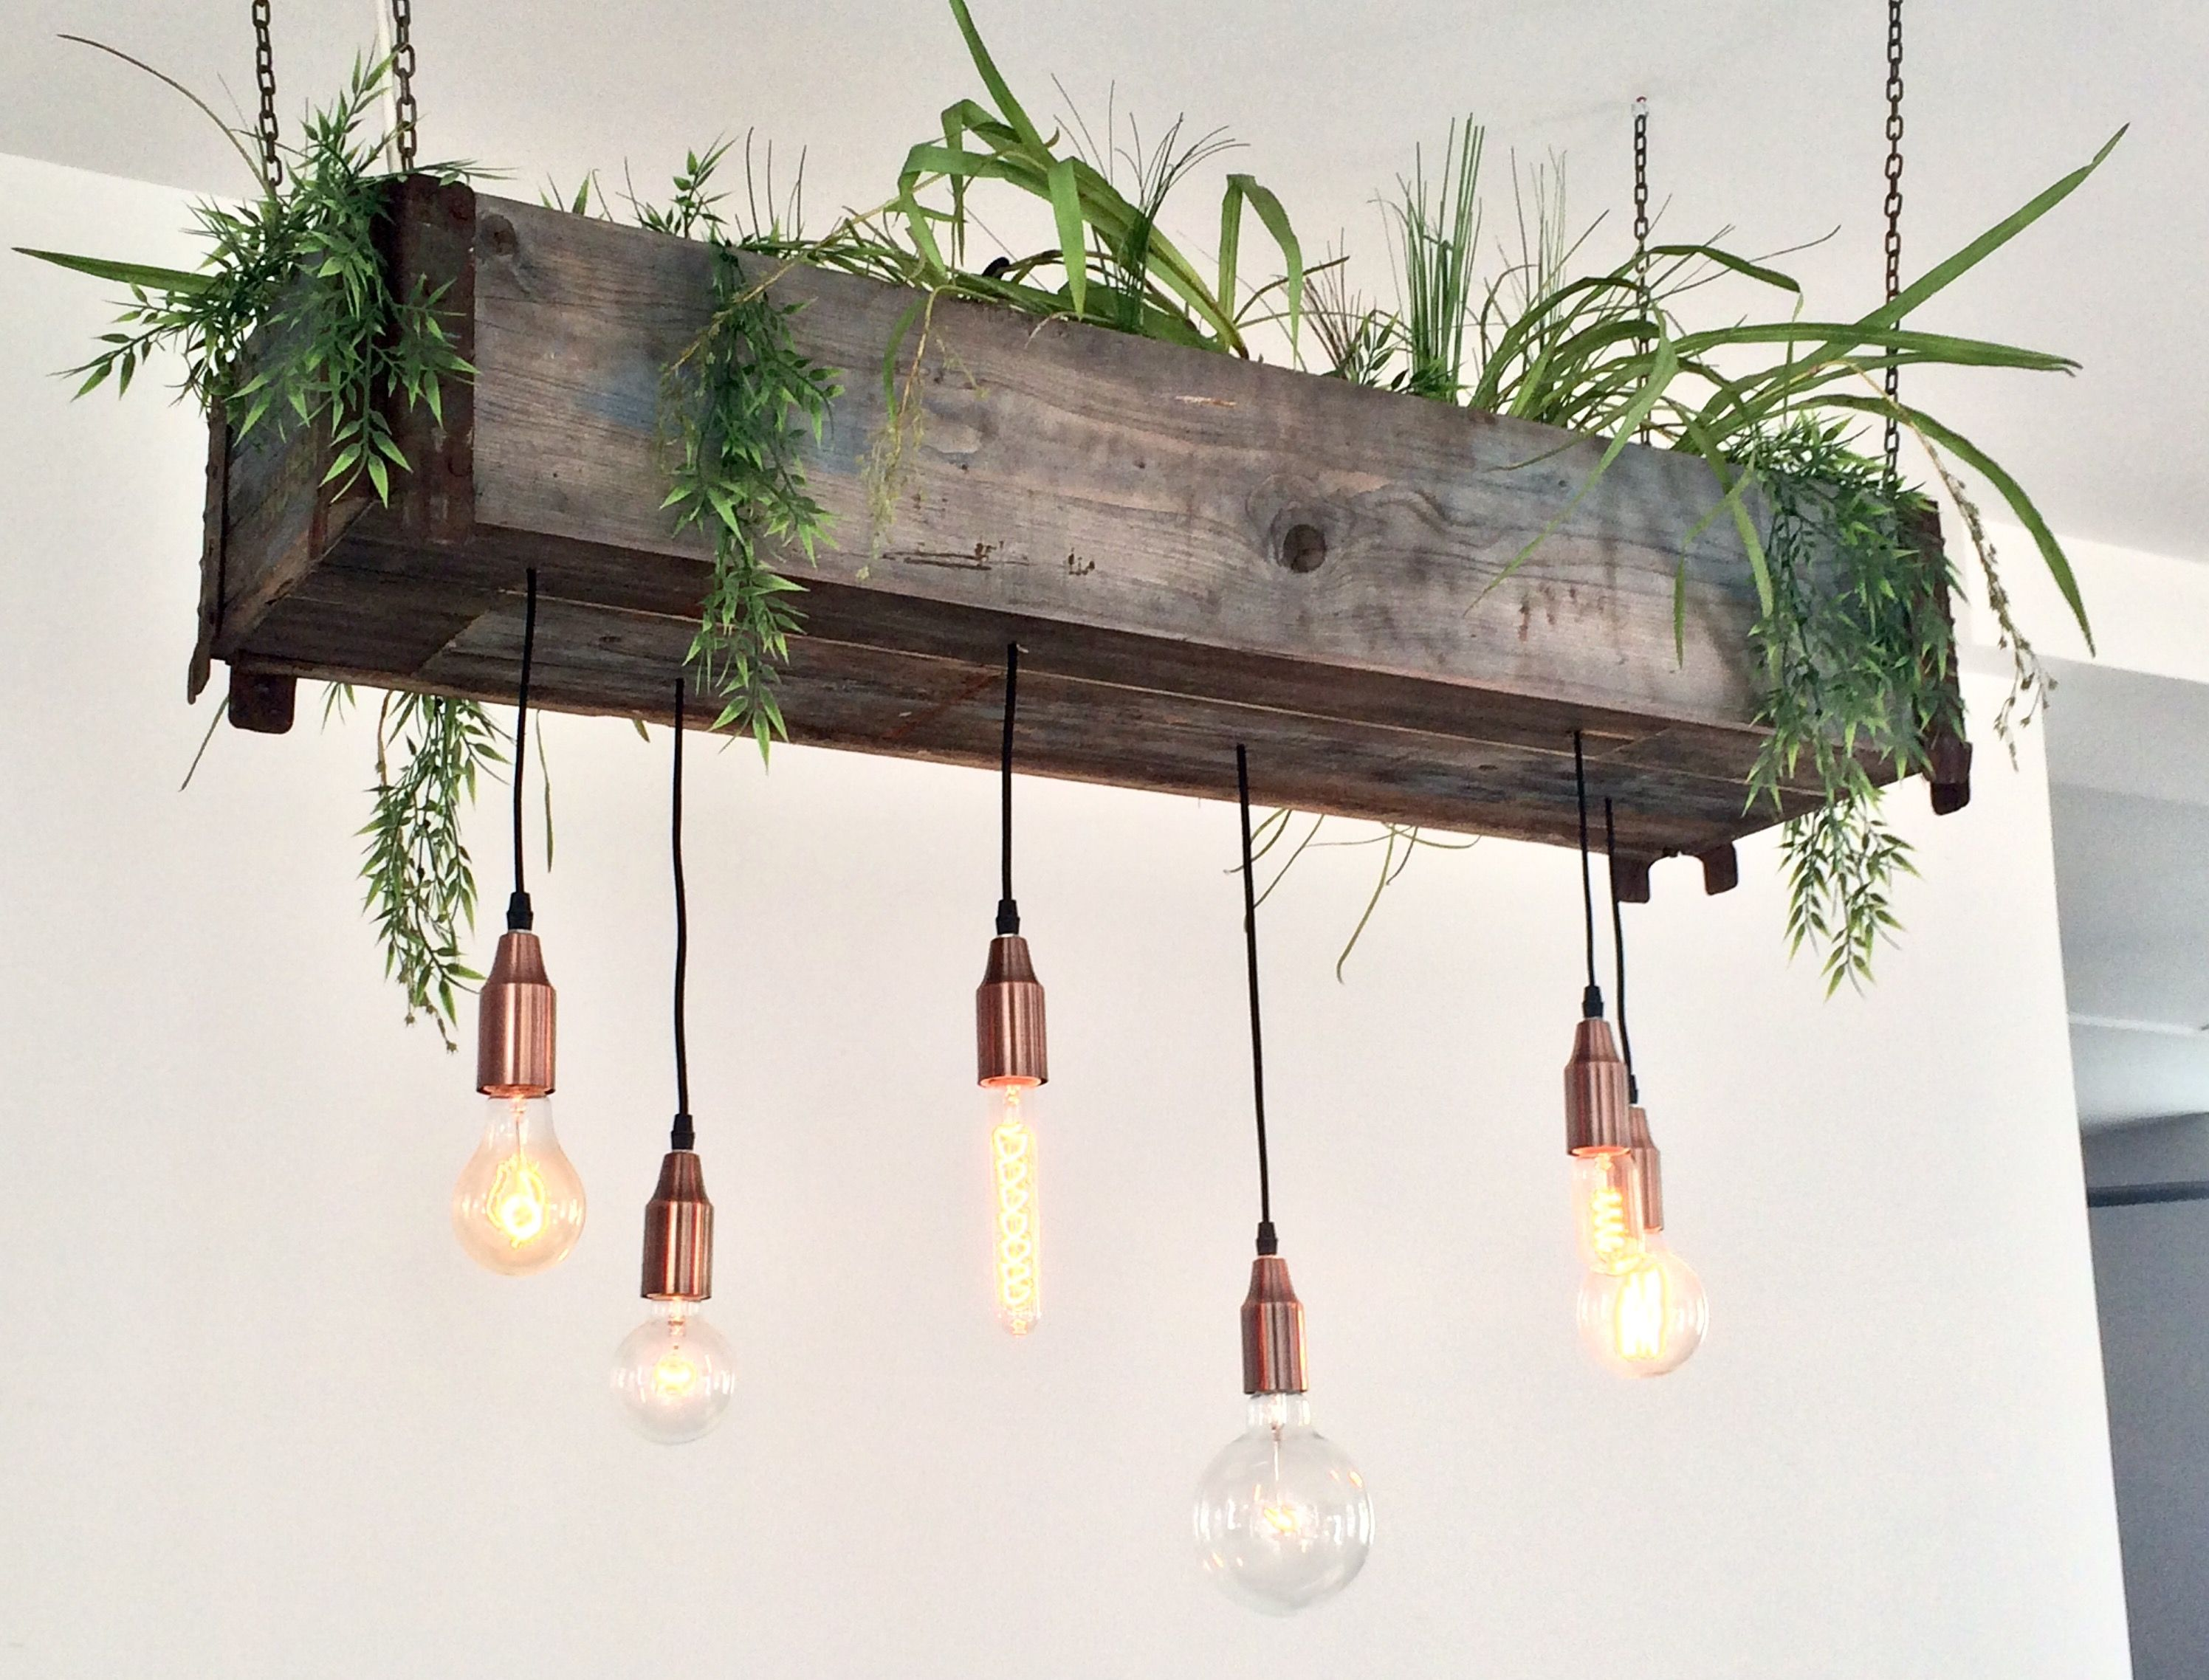 Lamp Plant Pendant Copper Chains Lamp Hanging Plant Up Cycled Diy Cafe